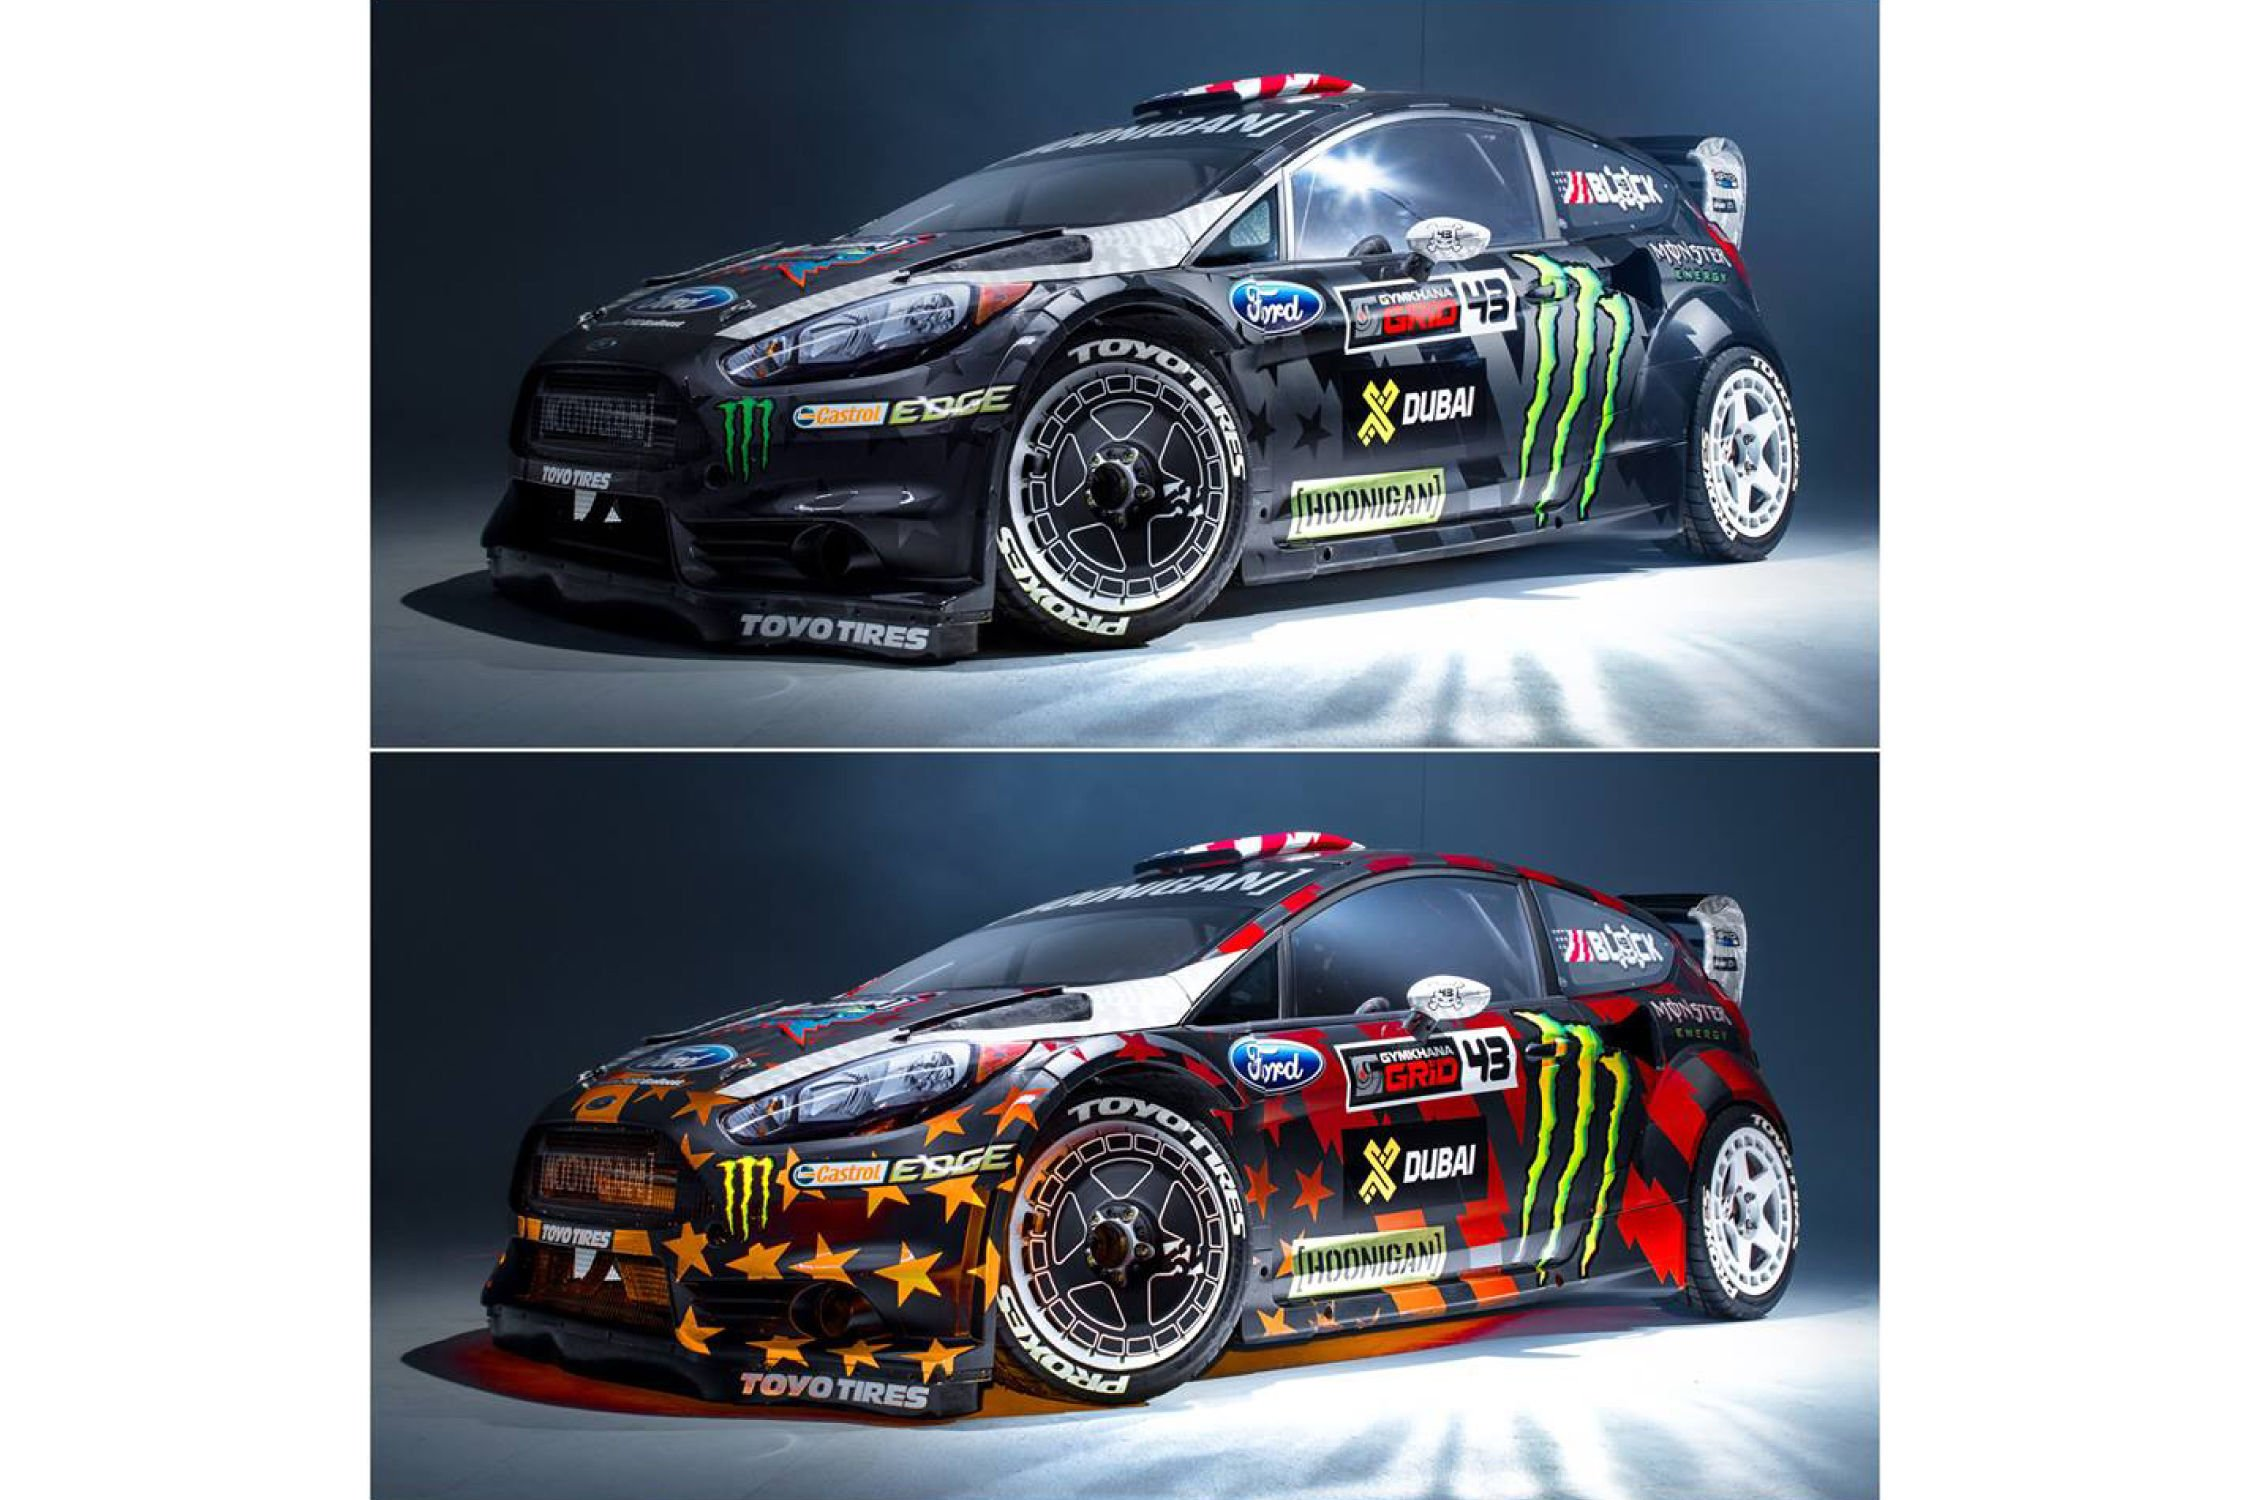 tonnante livr e pour la fiesta st rx43 de ken block. Black Bedroom Furniture Sets. Home Design Ideas